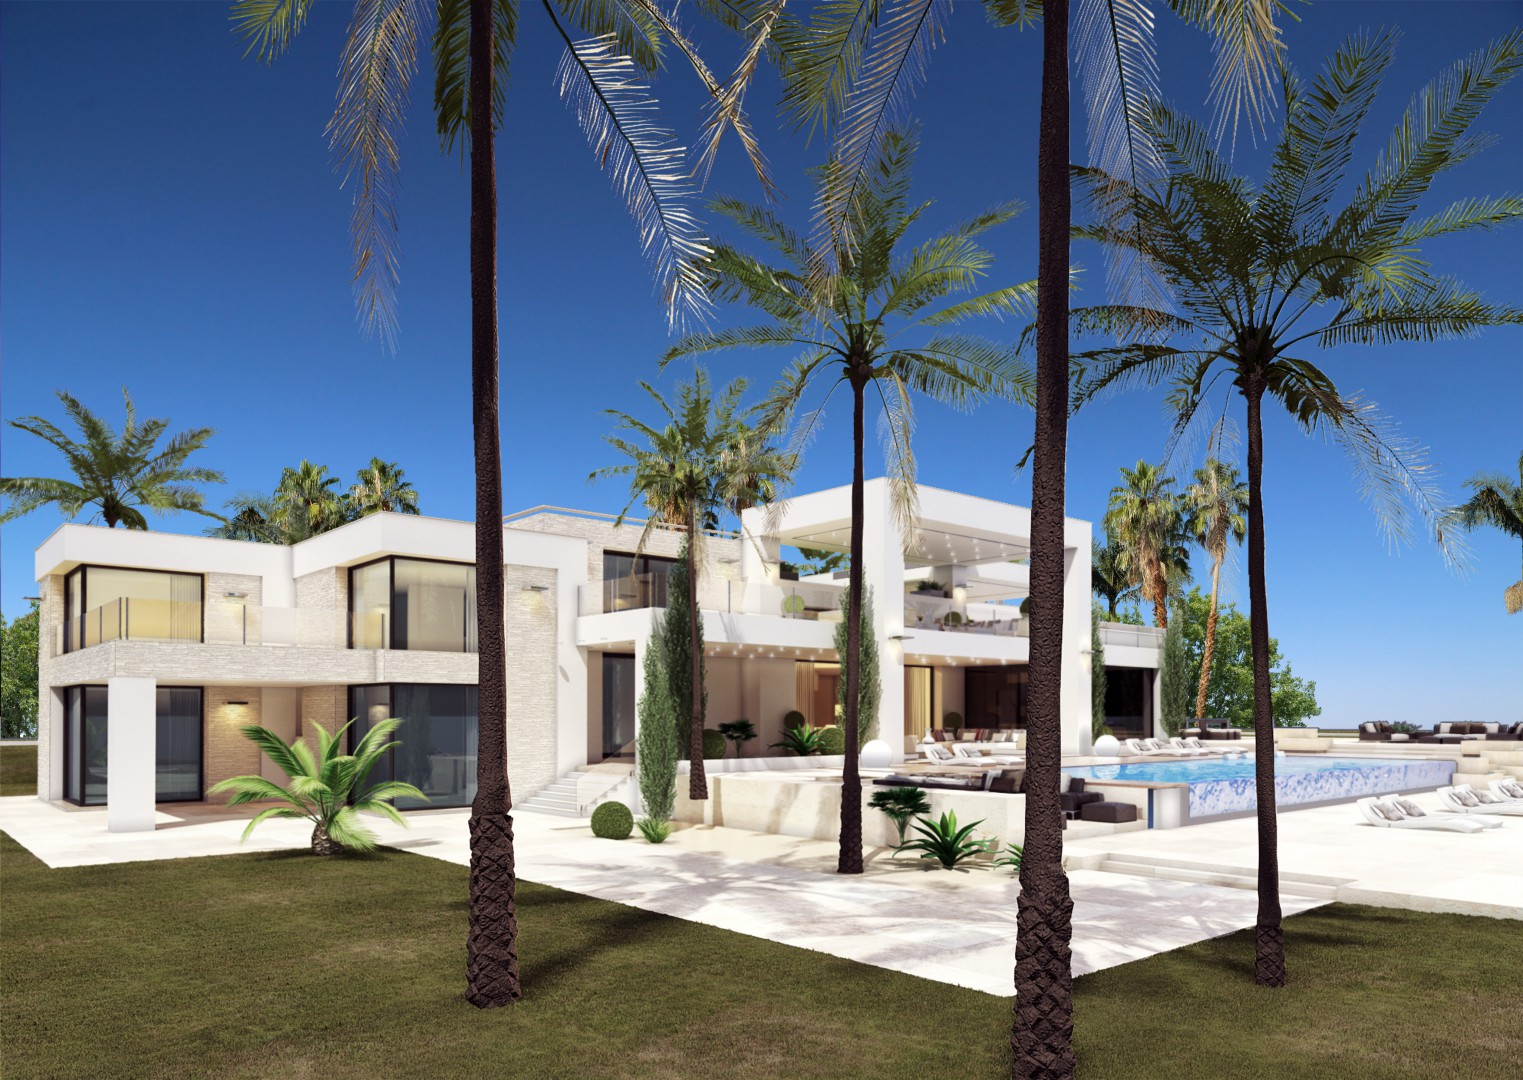 Maison unifamiliale pour l Vente à A truly jewel of villa at beachfront New Golden Mile Estepona, Costa Del Sol, 29680 Espagne